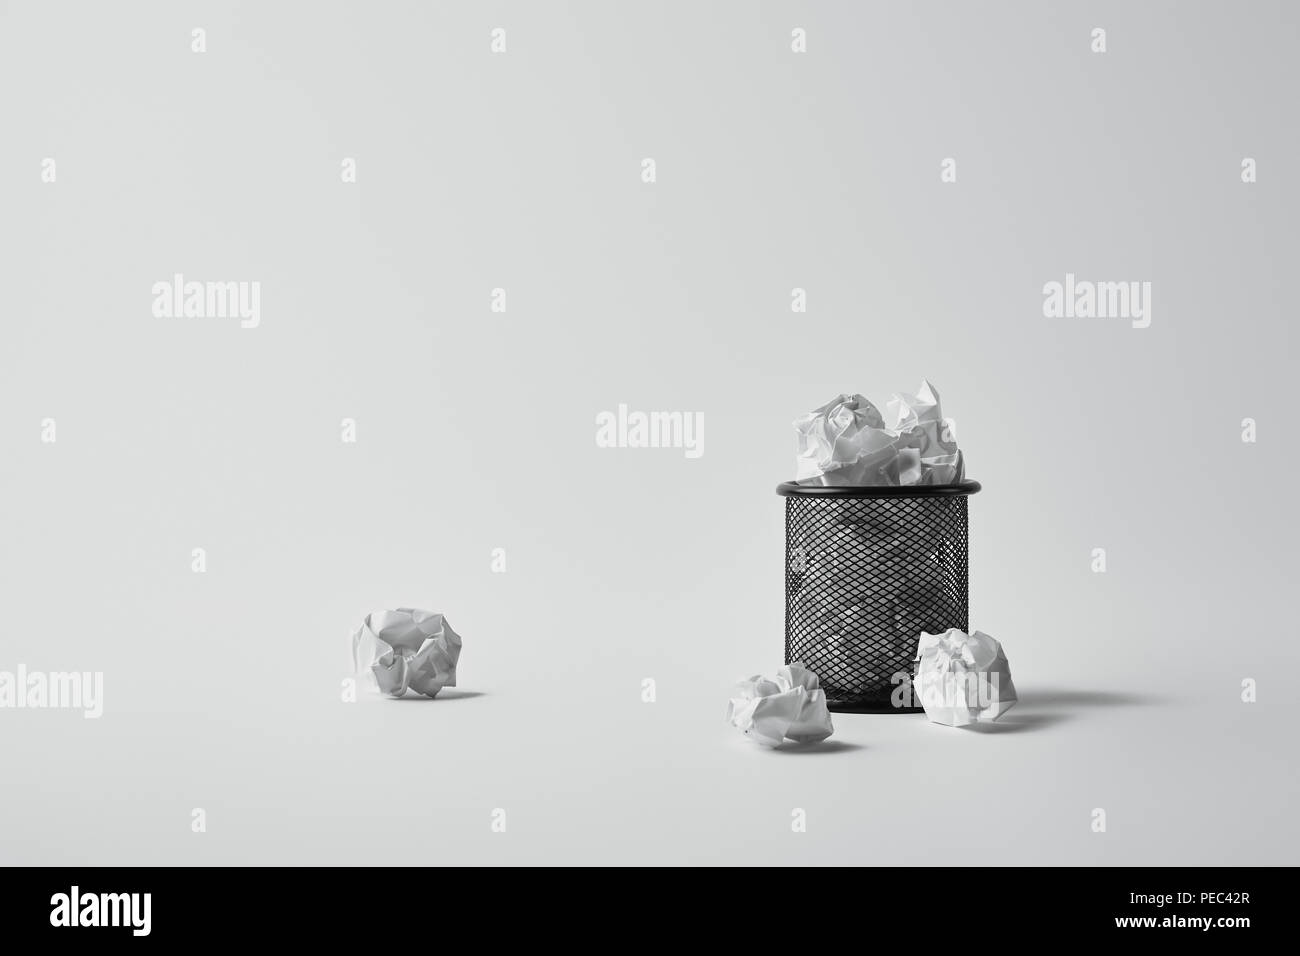 office trash can with crumpled papers on white surface - Stock Image